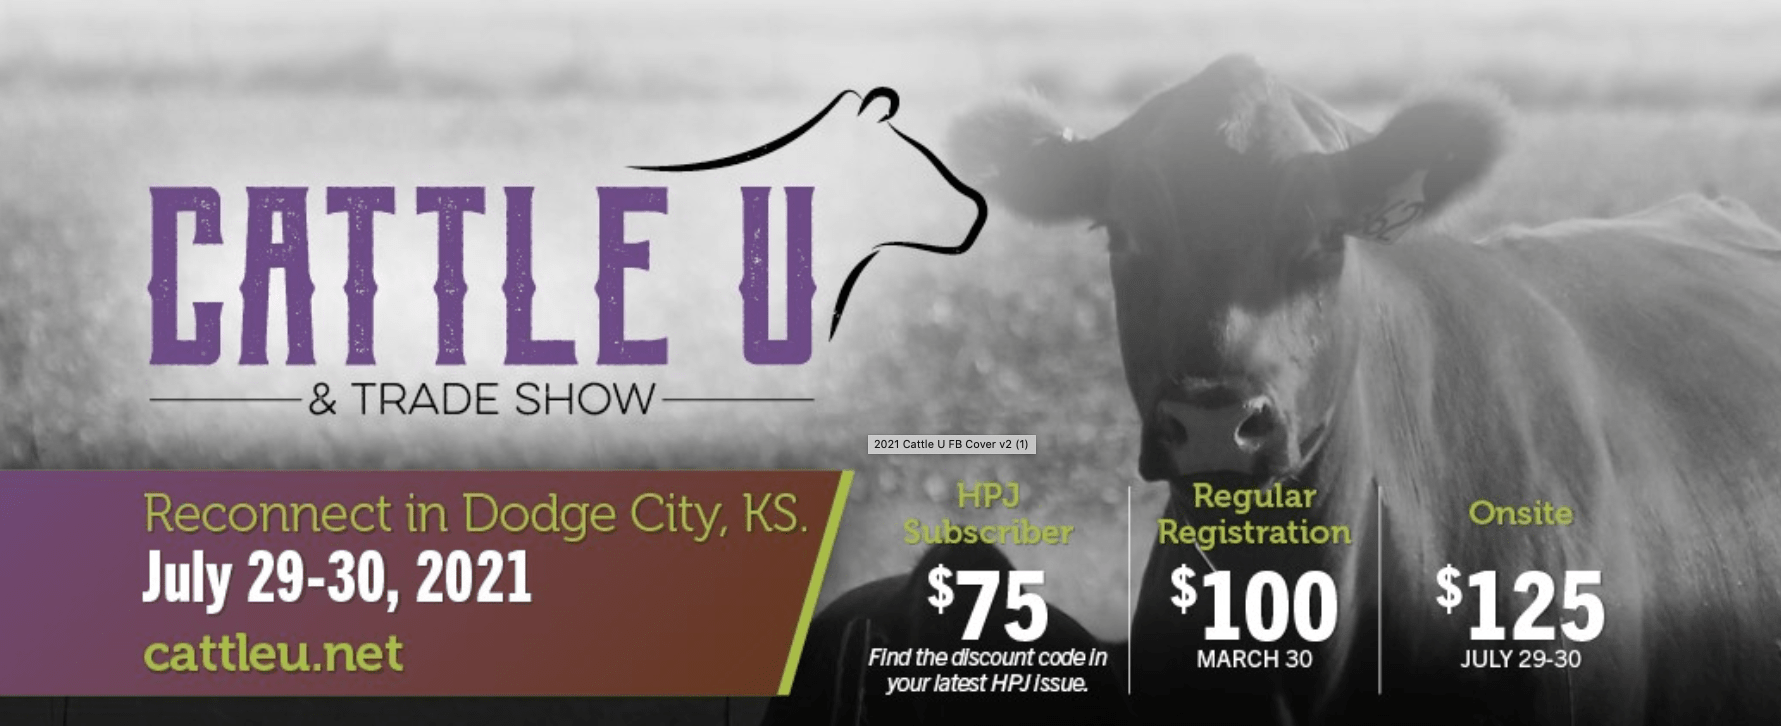 High Plains Journal's Cattle U and Trade Show